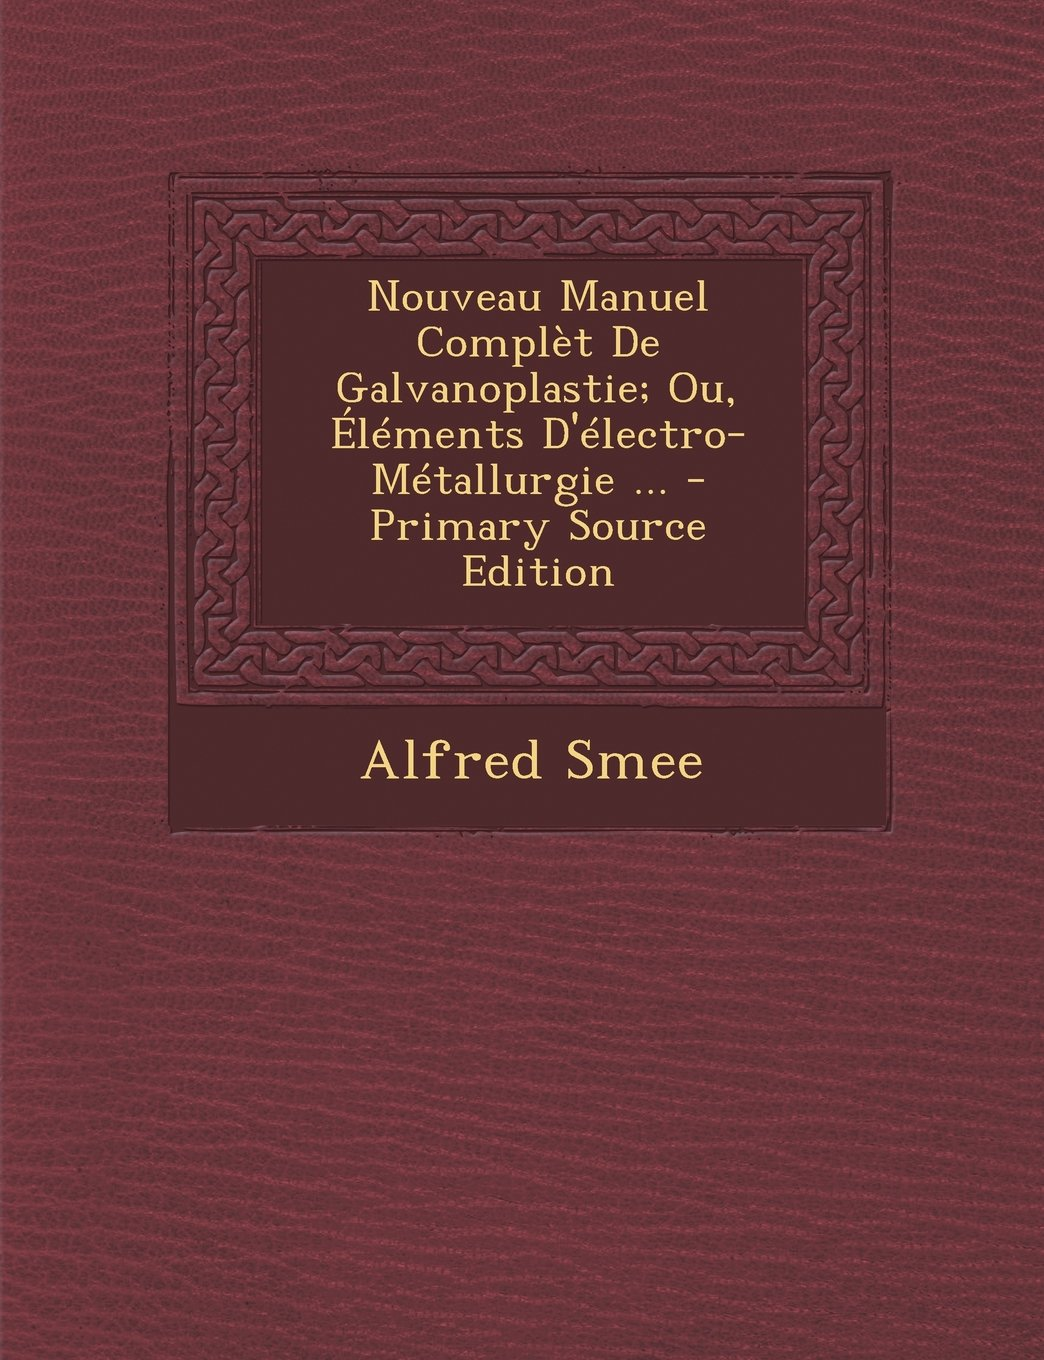 Read Online Nouveau Manuel Complet de Galvanoplastie; Ou, Elements D'Electro-Metallurgie ... - Primary Source Edition (French Edition) ebook